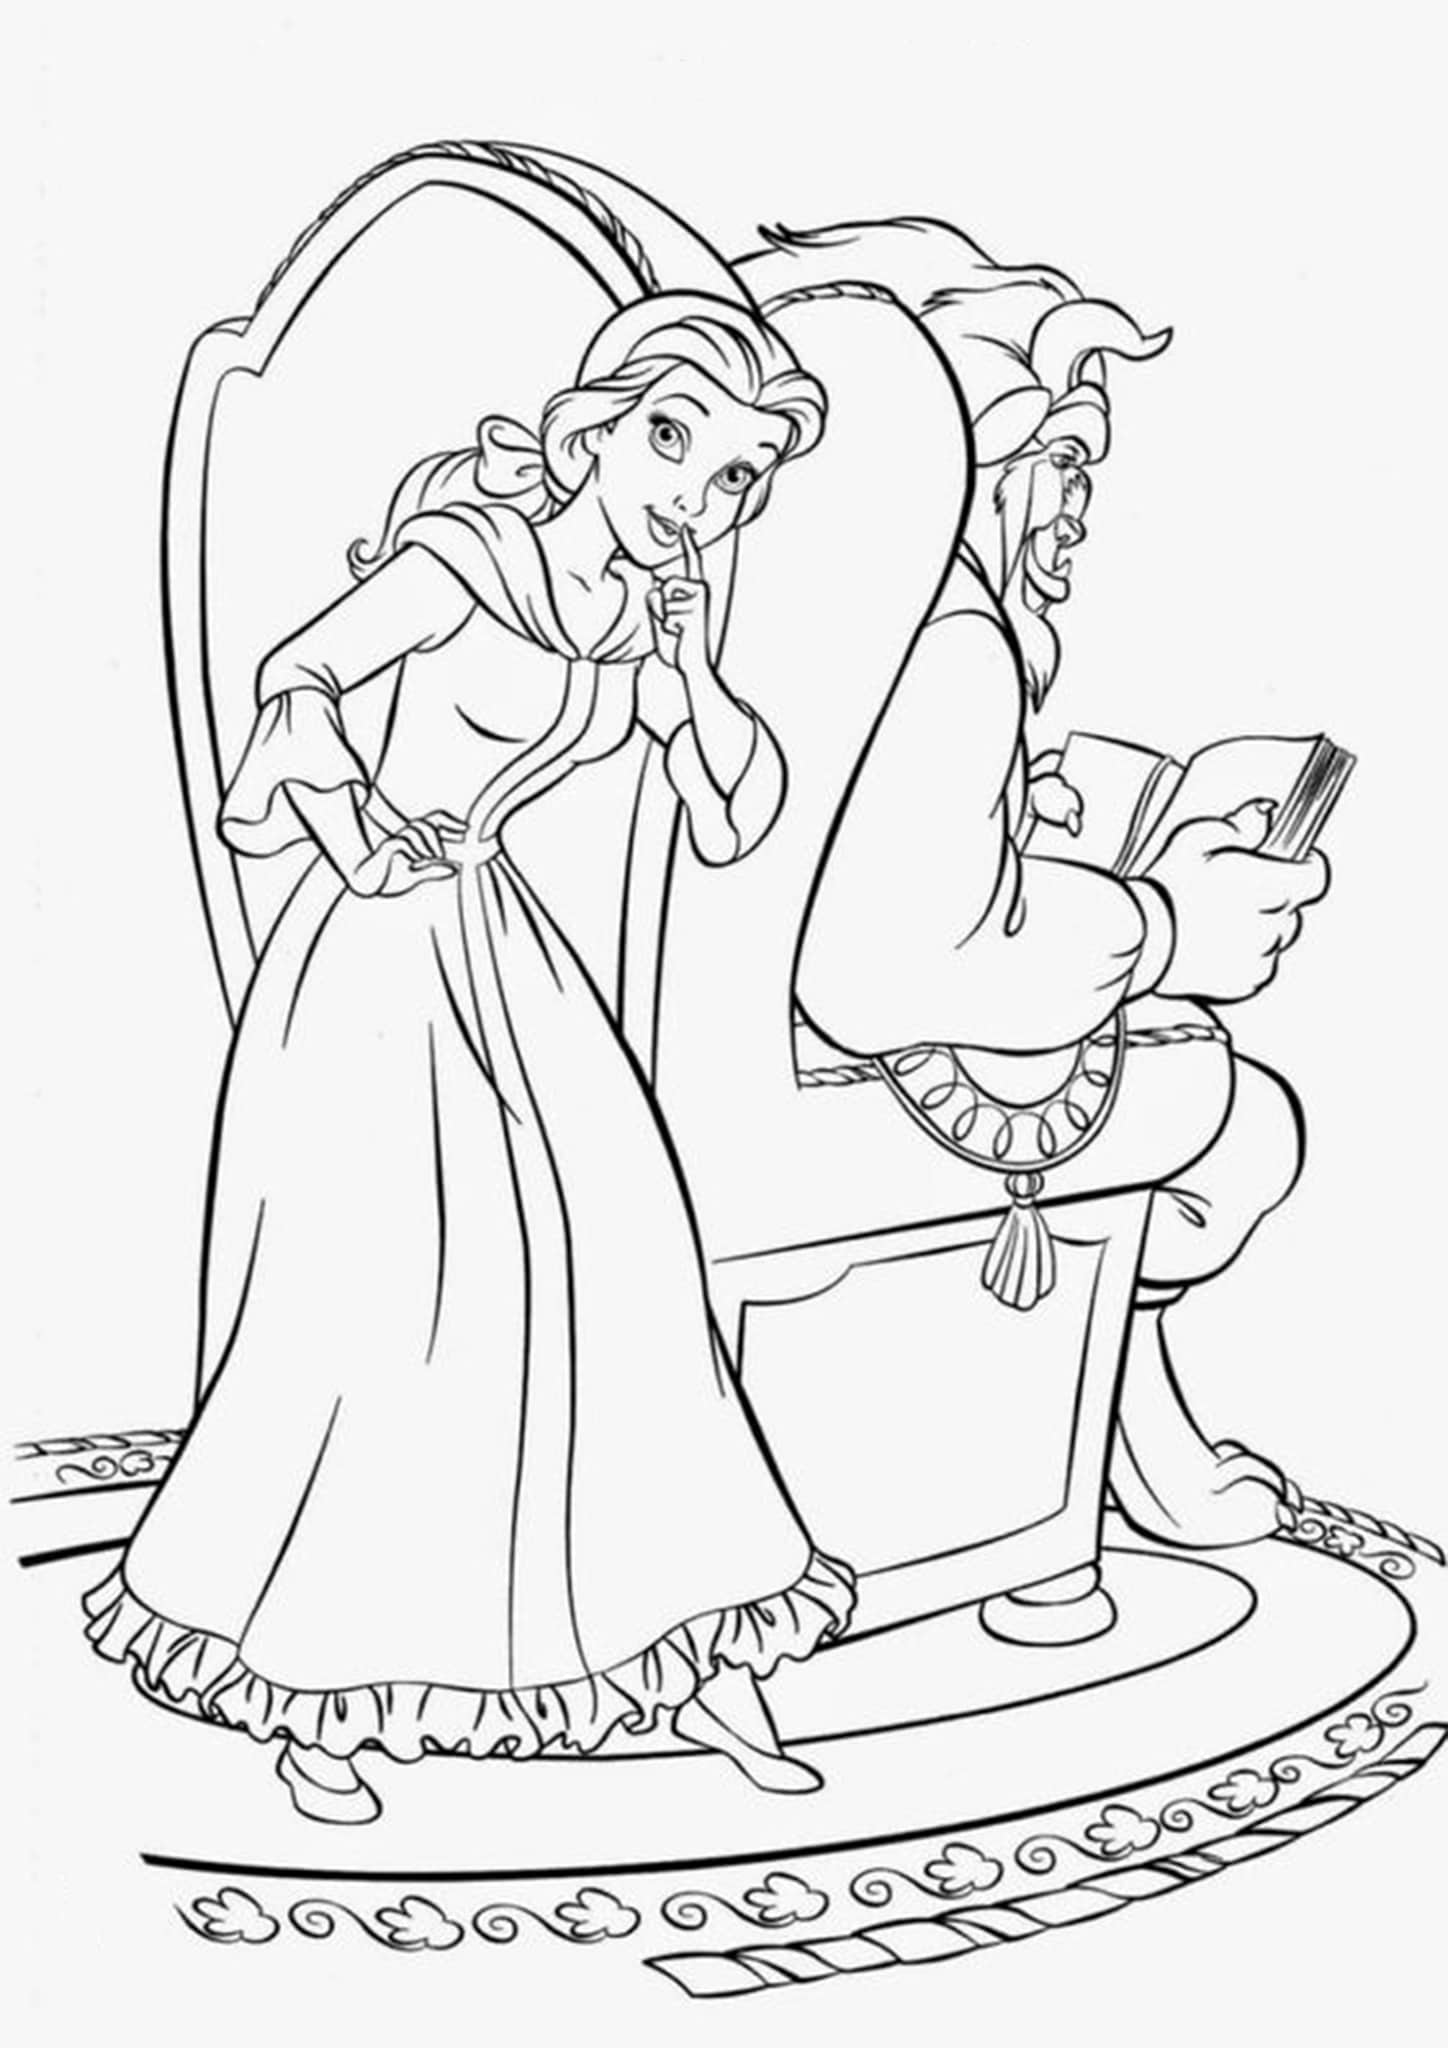 coloring pages beauty and the beast beauty and the beast coloring pages beast pages beauty the coloring and